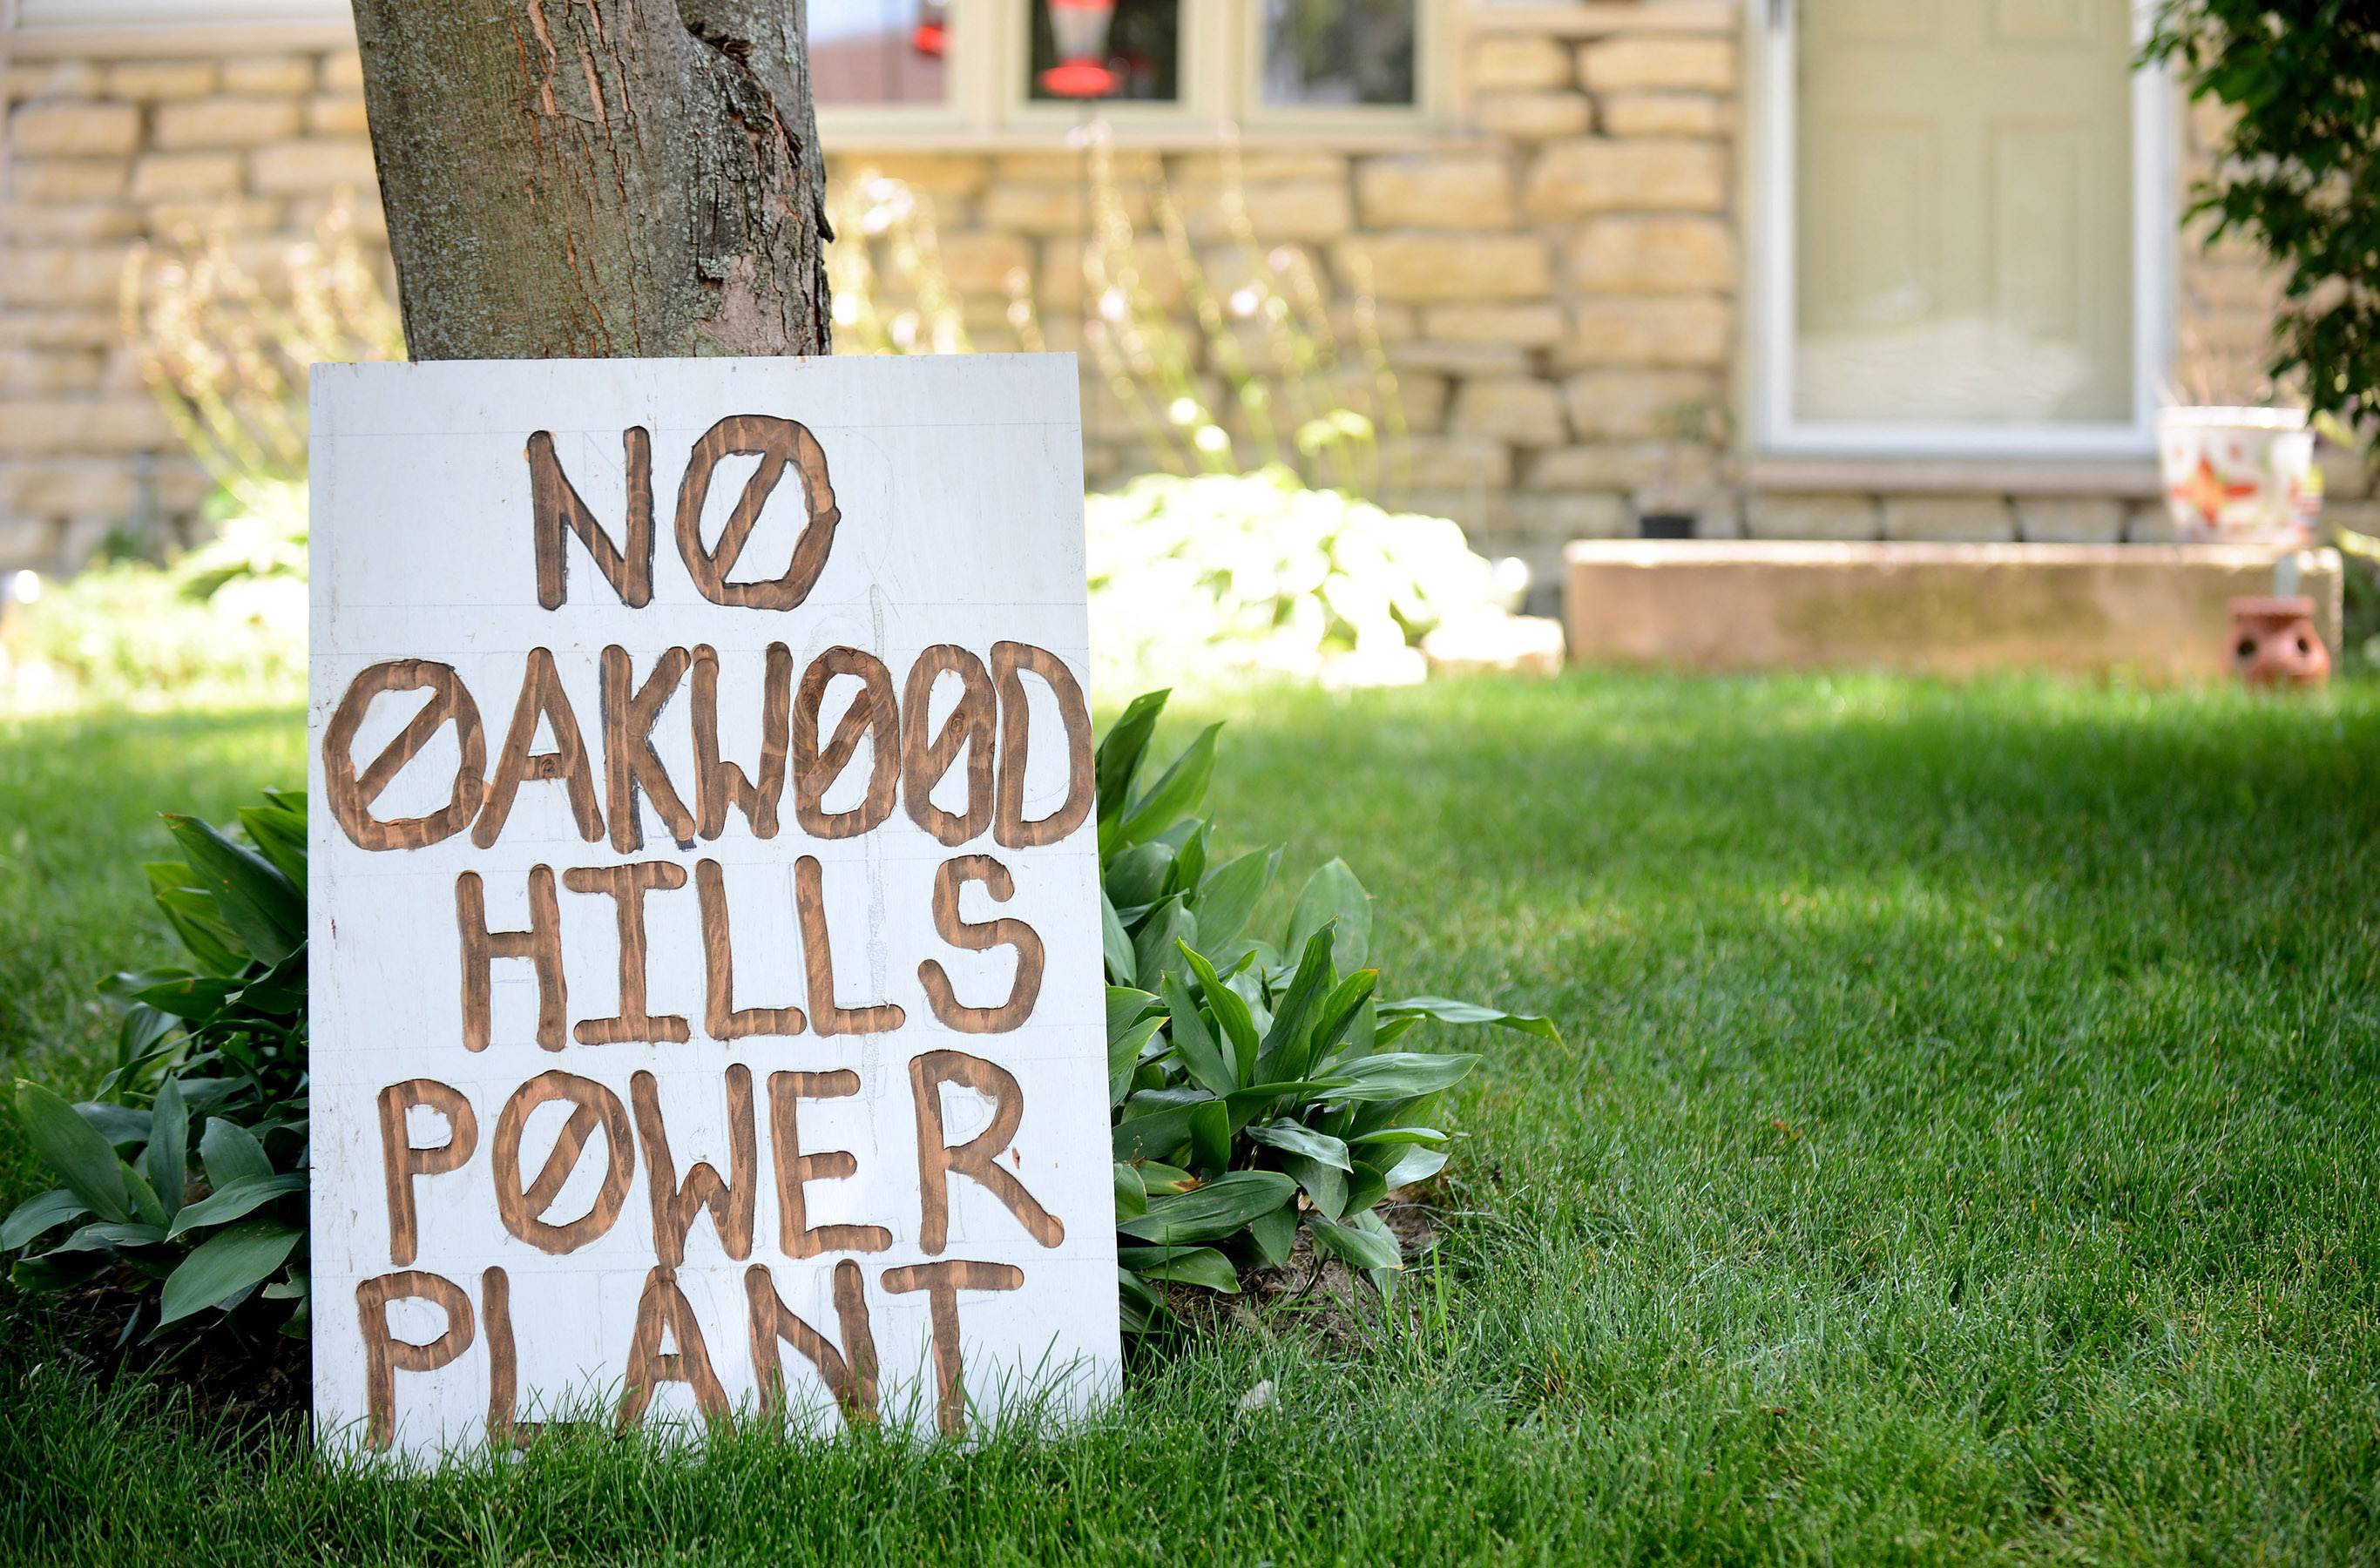 Hundreds of Oakwood Hills residents opposed to a proposed power plant have posted signs on their lawns, like this one on Greenview Road.